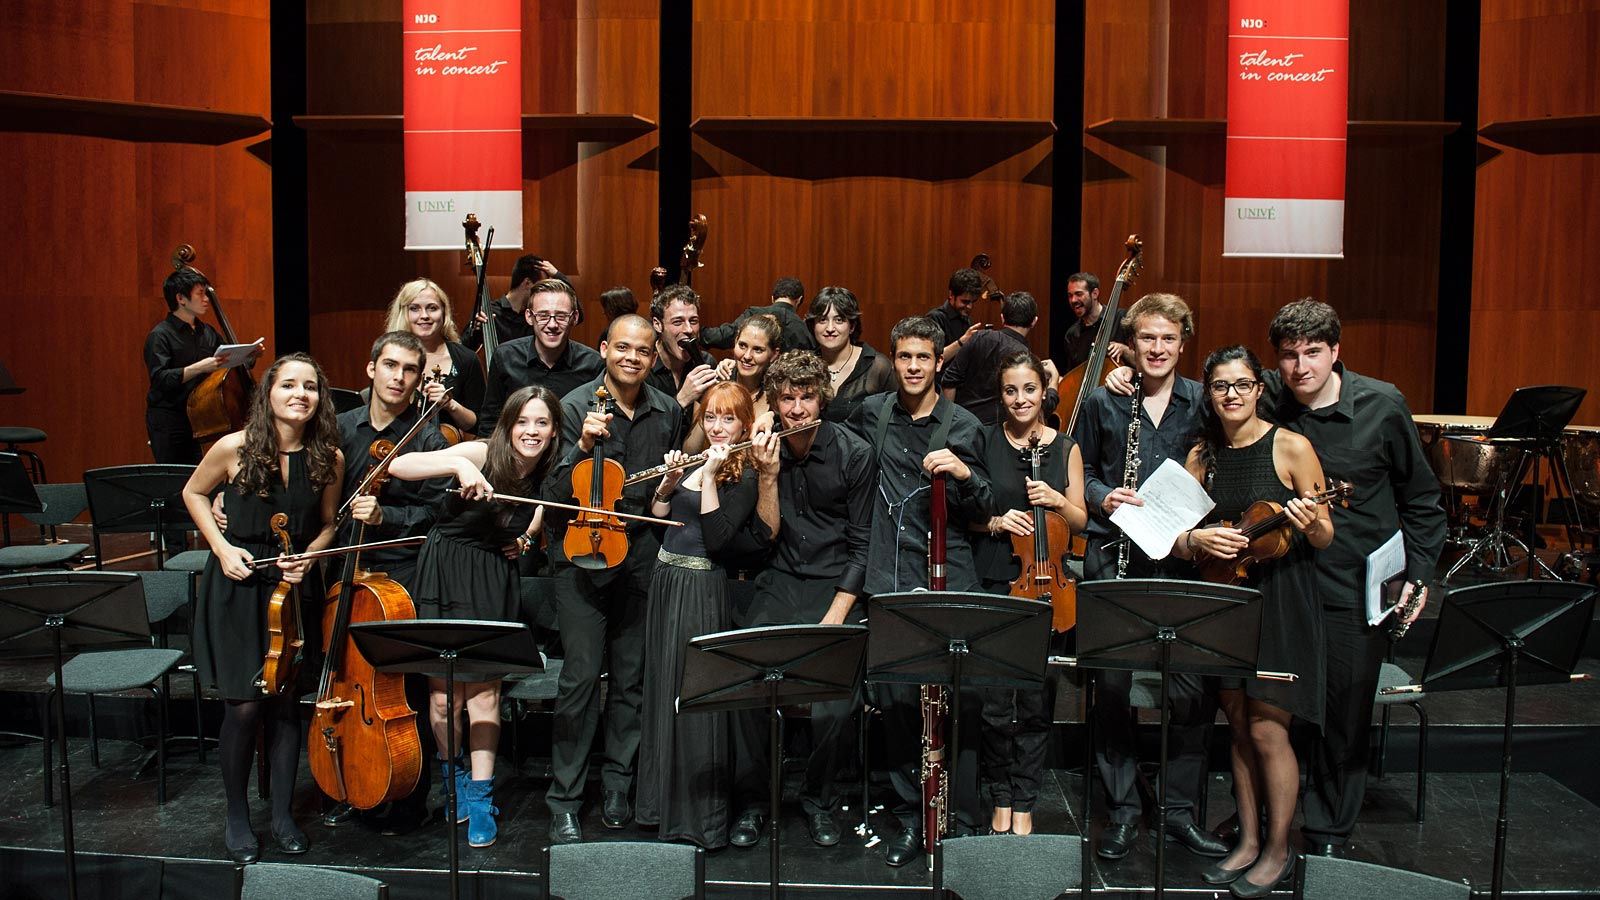 NJO / Dutch Orchestra and Ensemble Academy